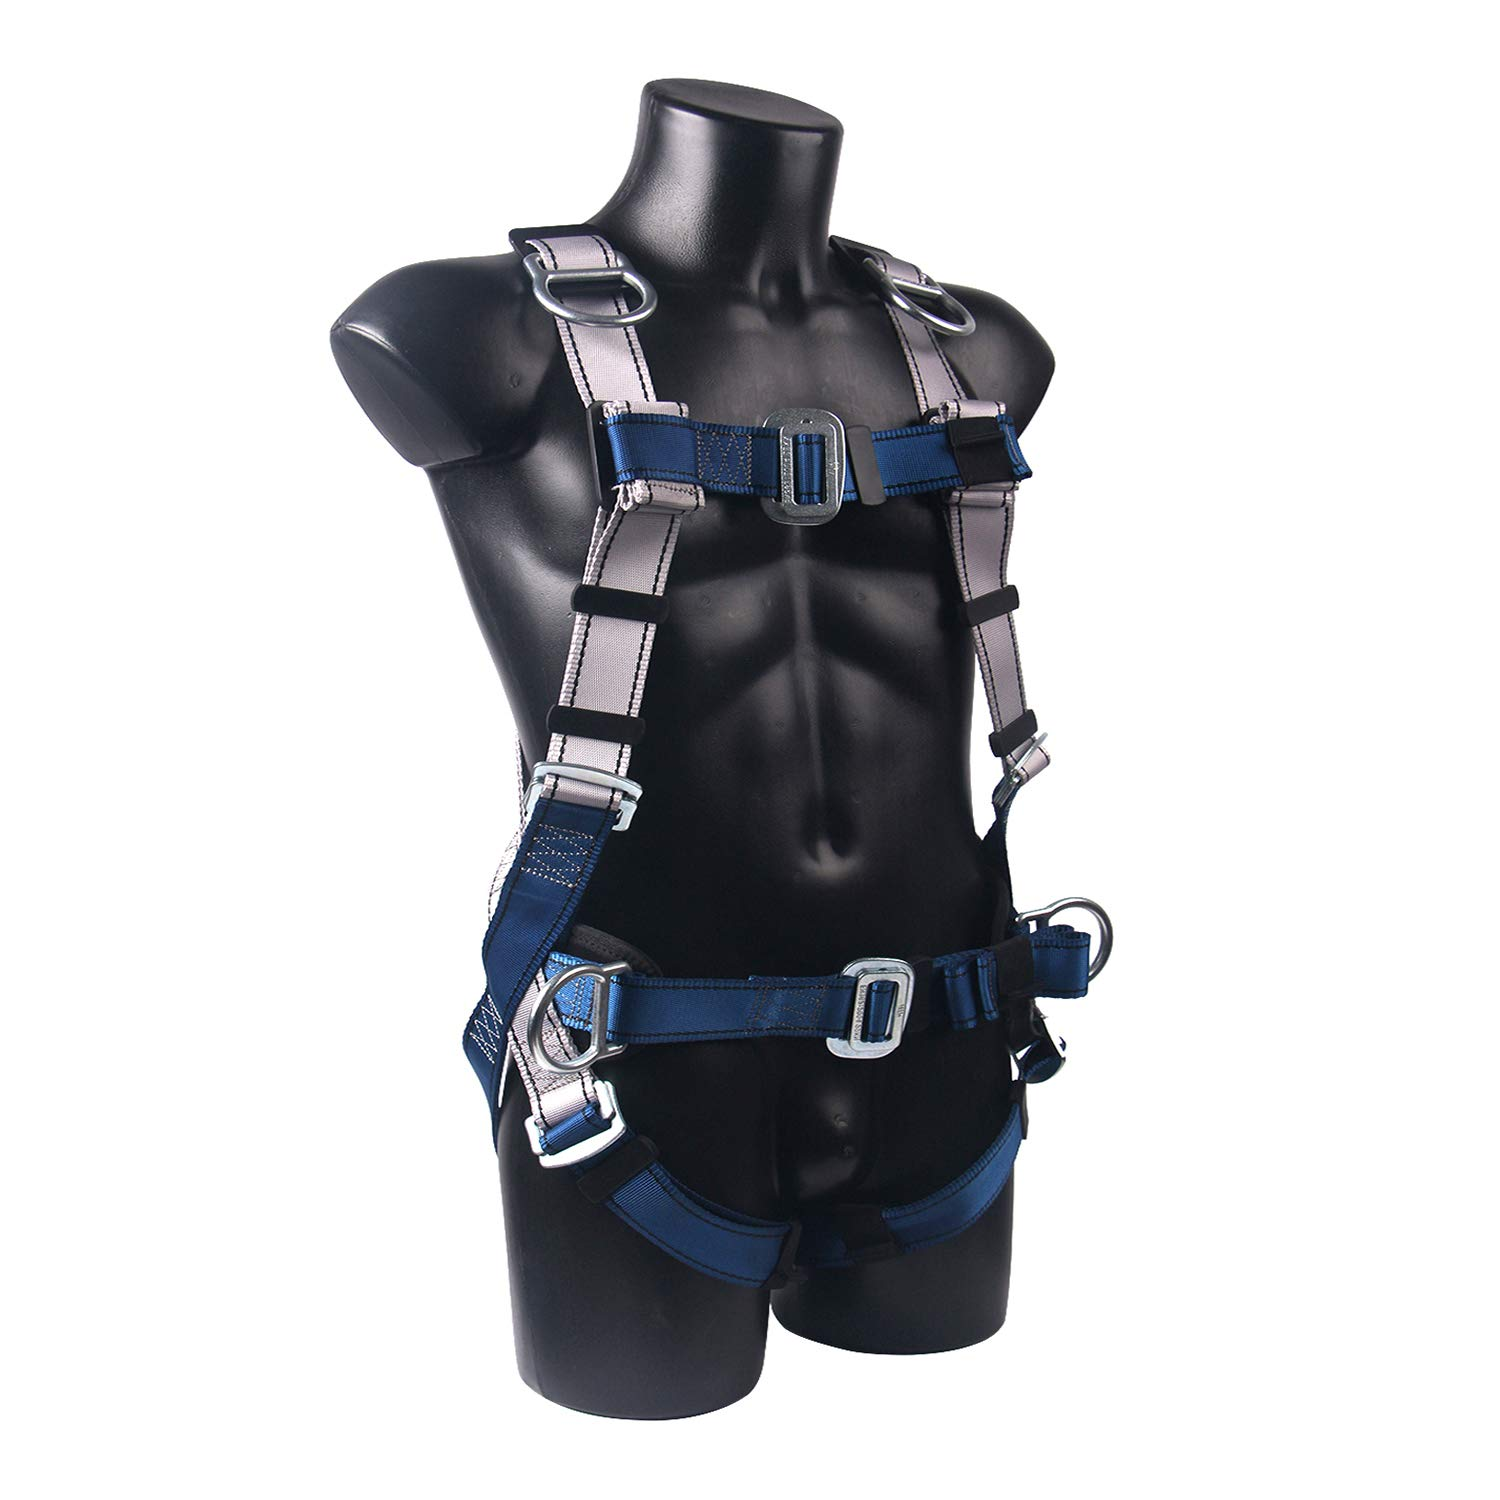 JINGYAT Full Body Safety Harness Fall Protection with 5 D-Ring,Universal Personal Protective Equipment (130-310 pound),Construction Industrial Tower Roofing Tool by JINGYAT (Image #1)